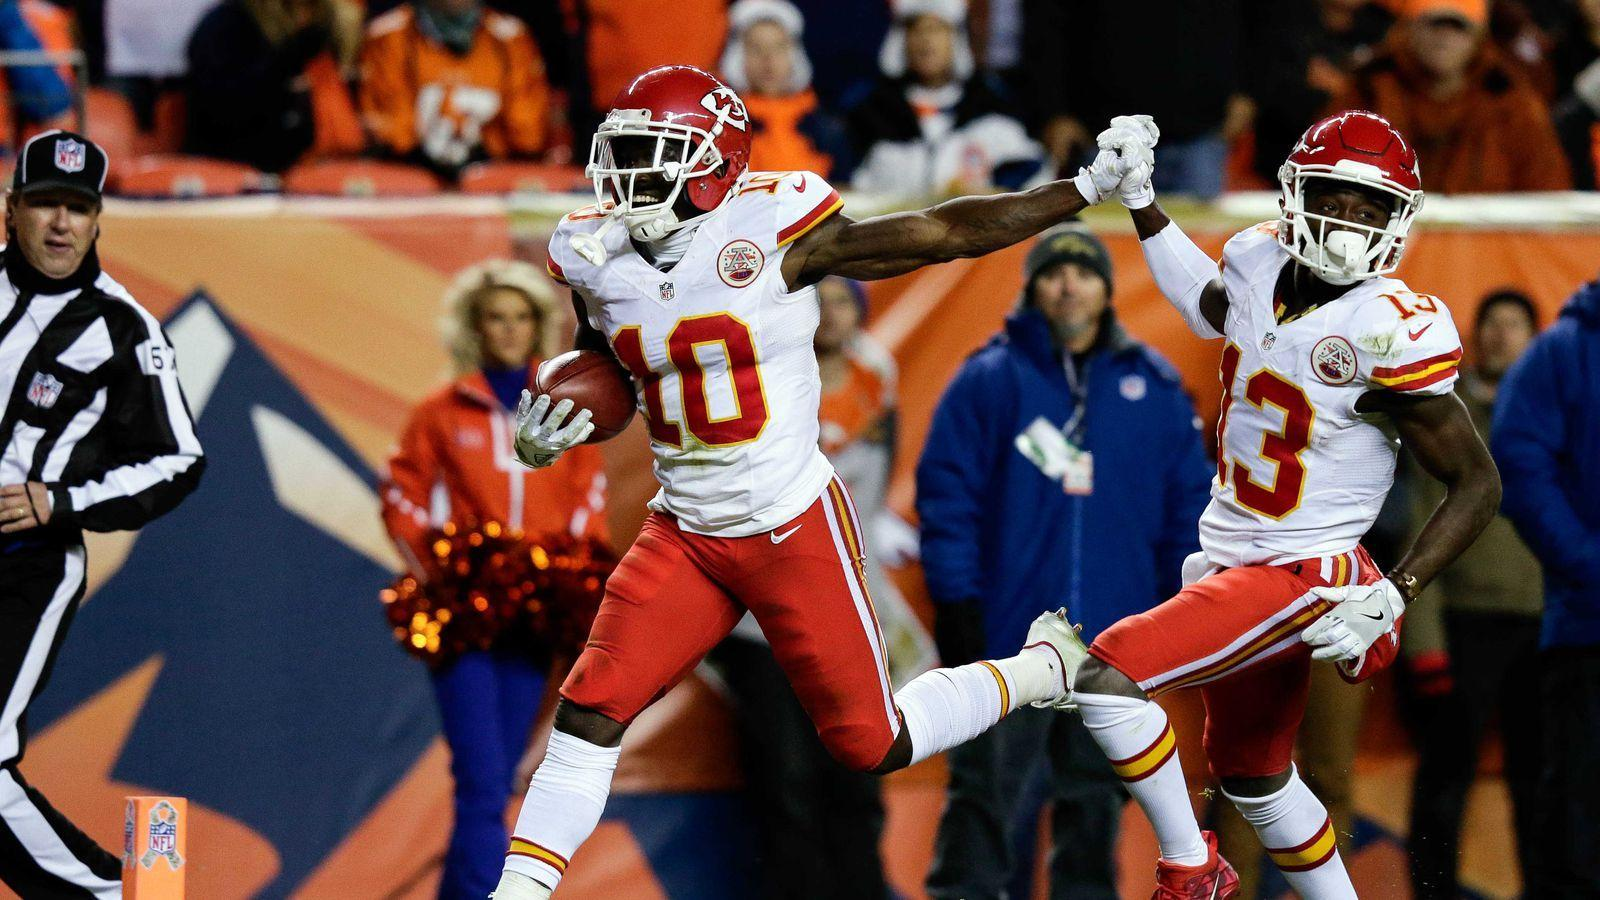 Tyreek Hill will return punts, not kicks for Chiefs this year